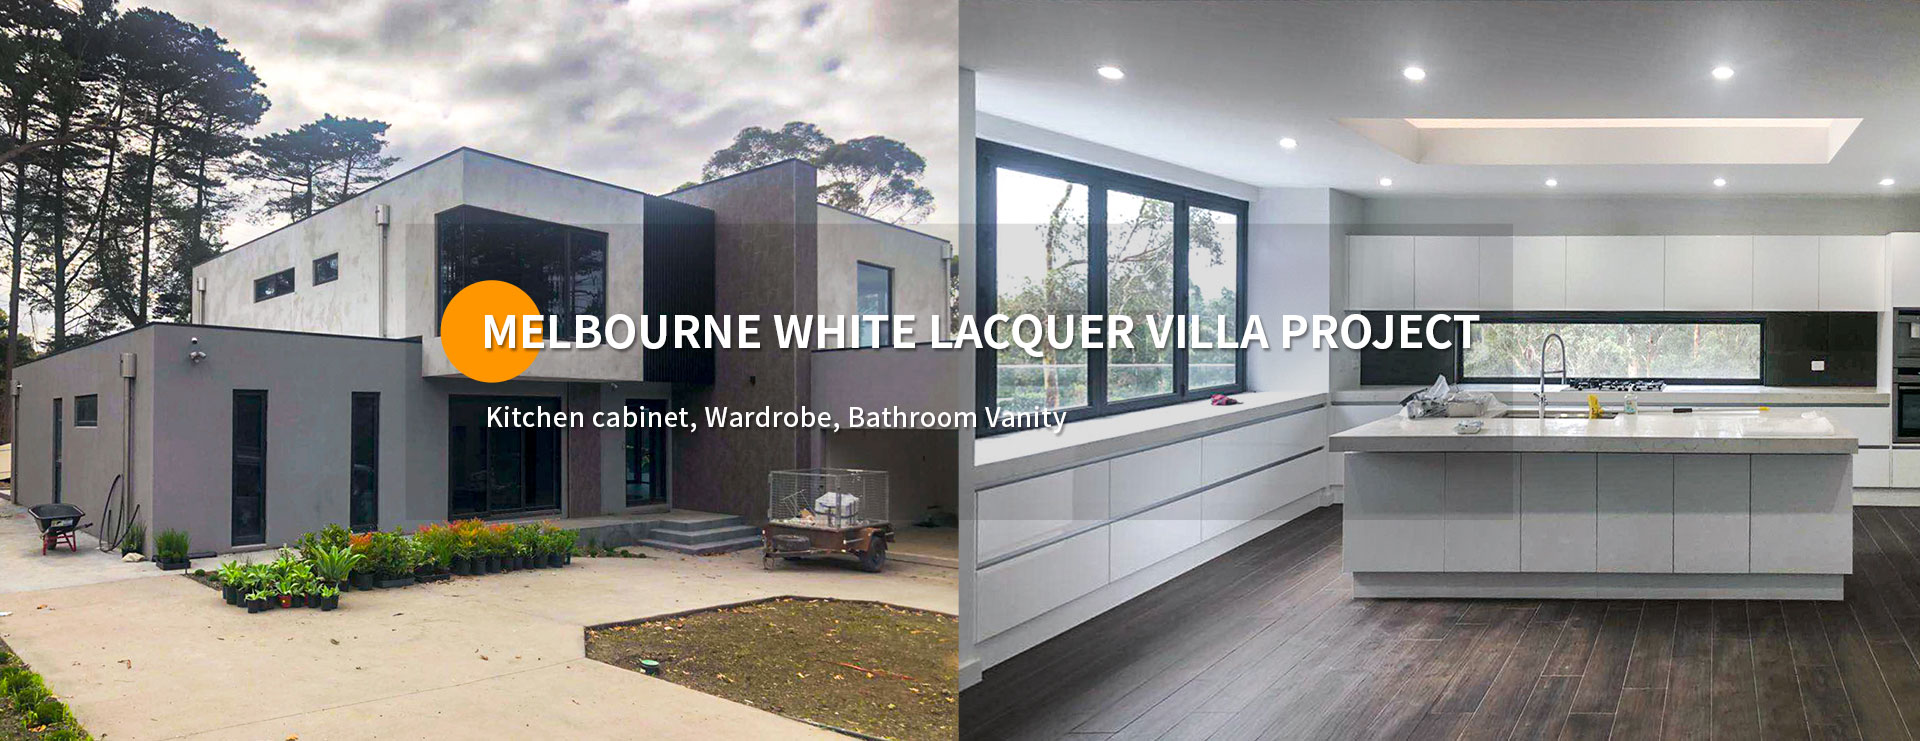 Melbourne-White-Lacquer-Villa-Project-2 (1)